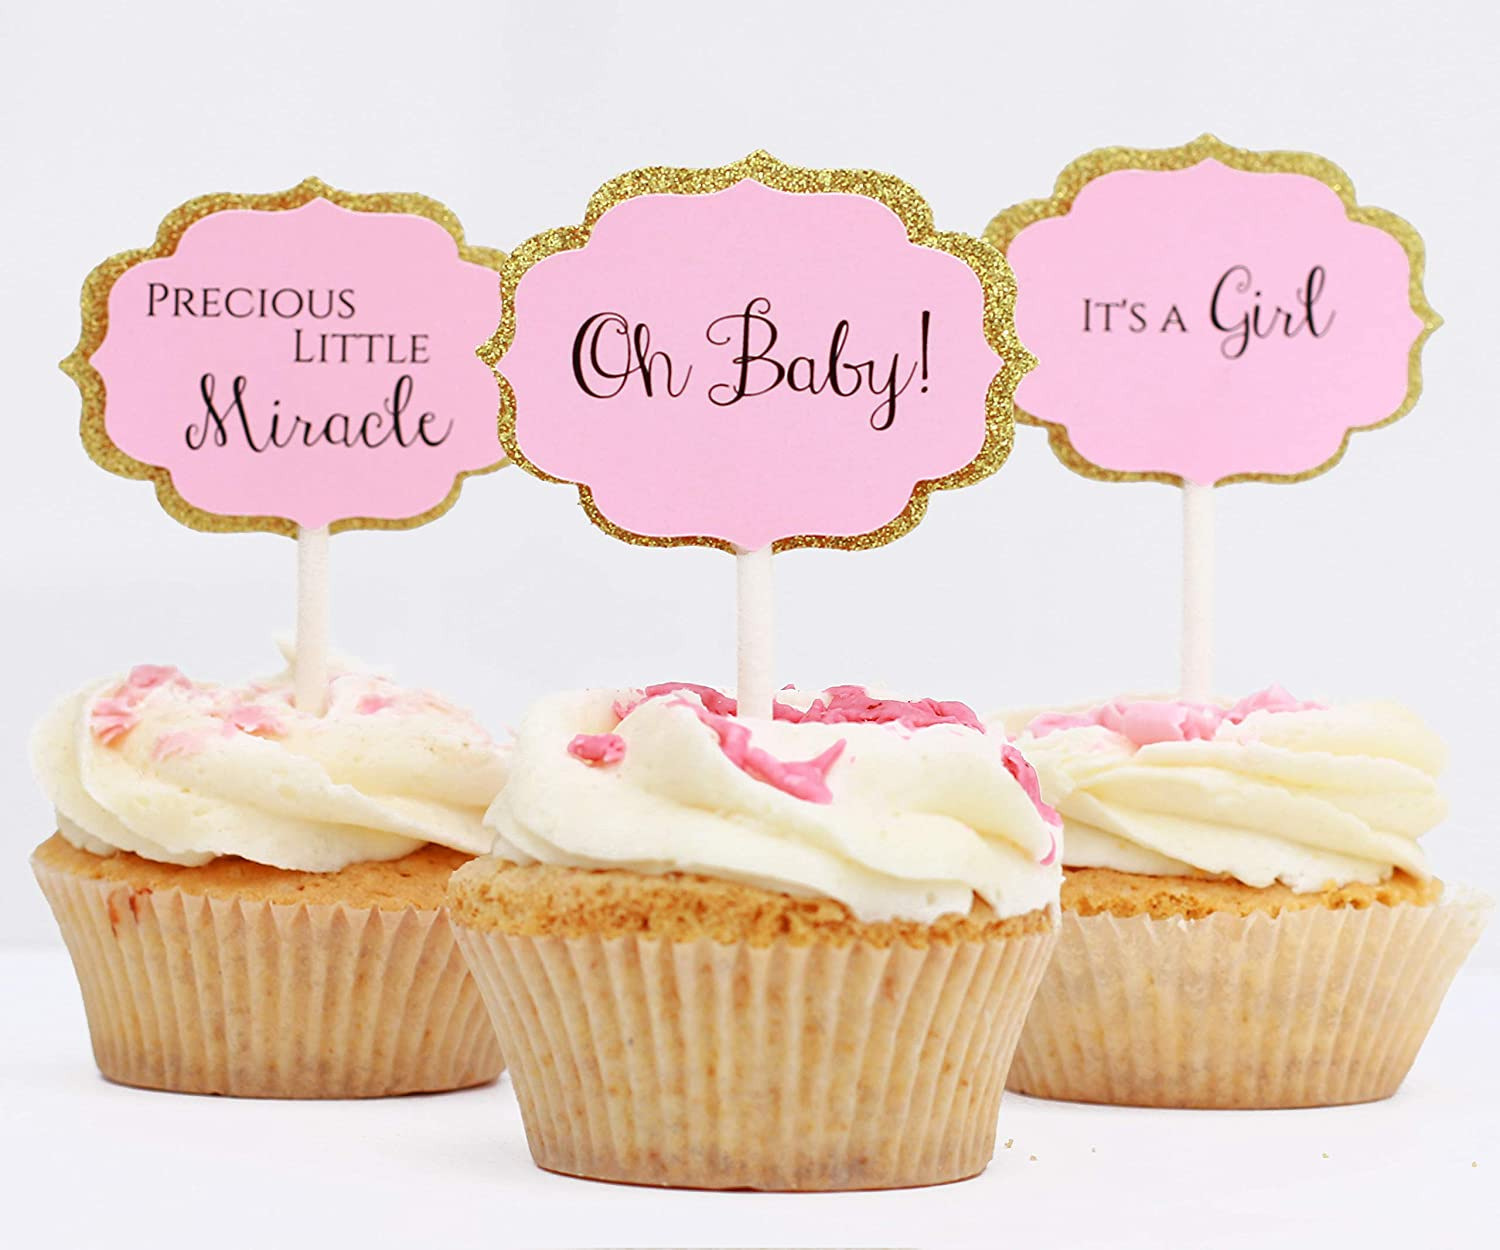 Boy//Girl Type Kids Birthday Cute Cupcake Toppers Baby Shower Cake Decor YIJ